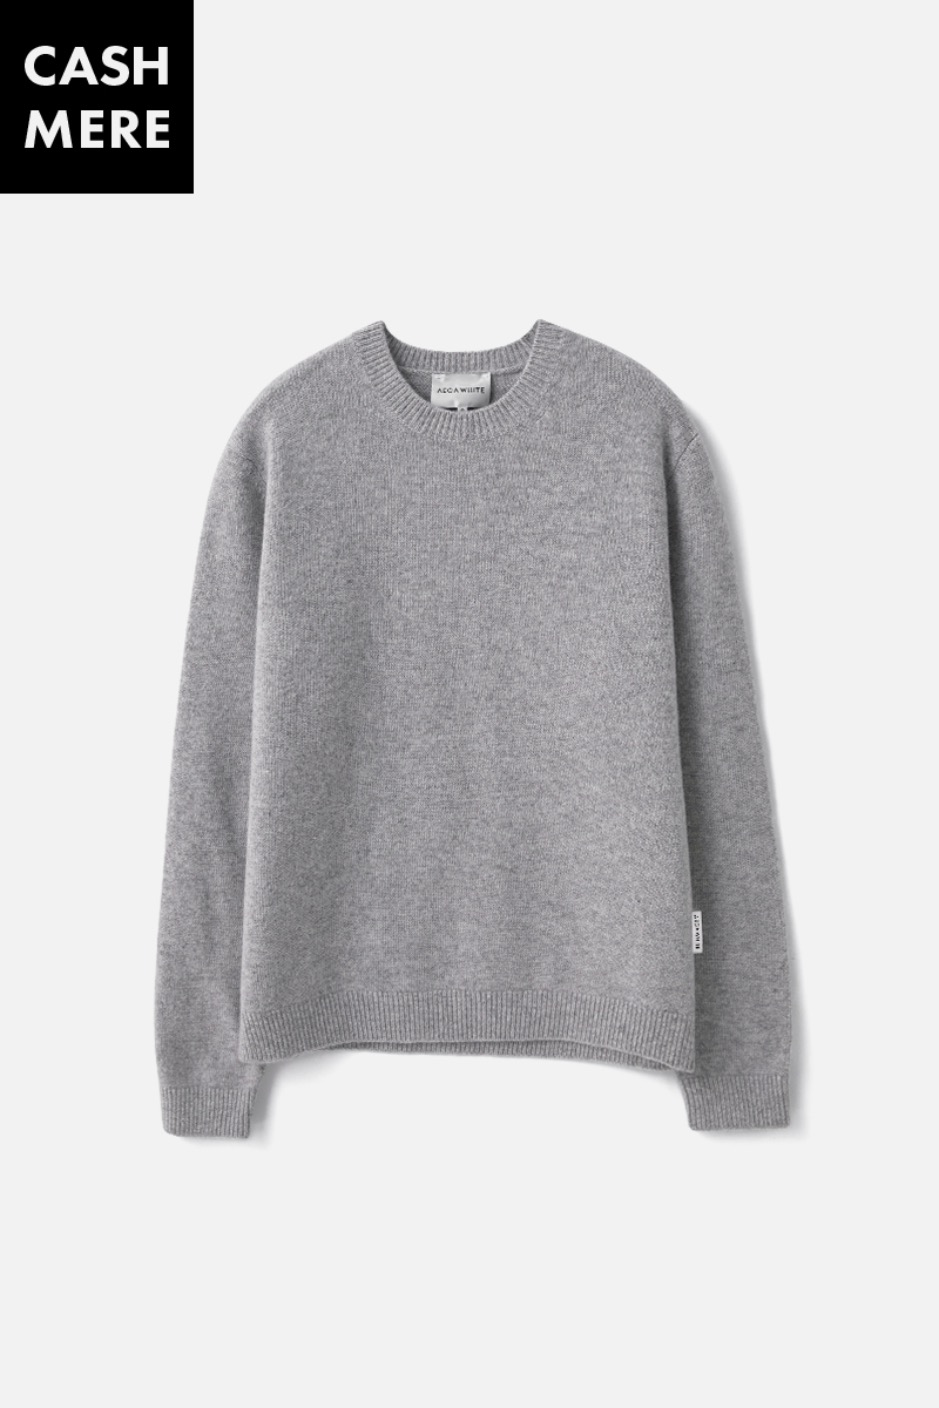 CASHMERE WOOL KNIT (Premium BASIC) -GREY